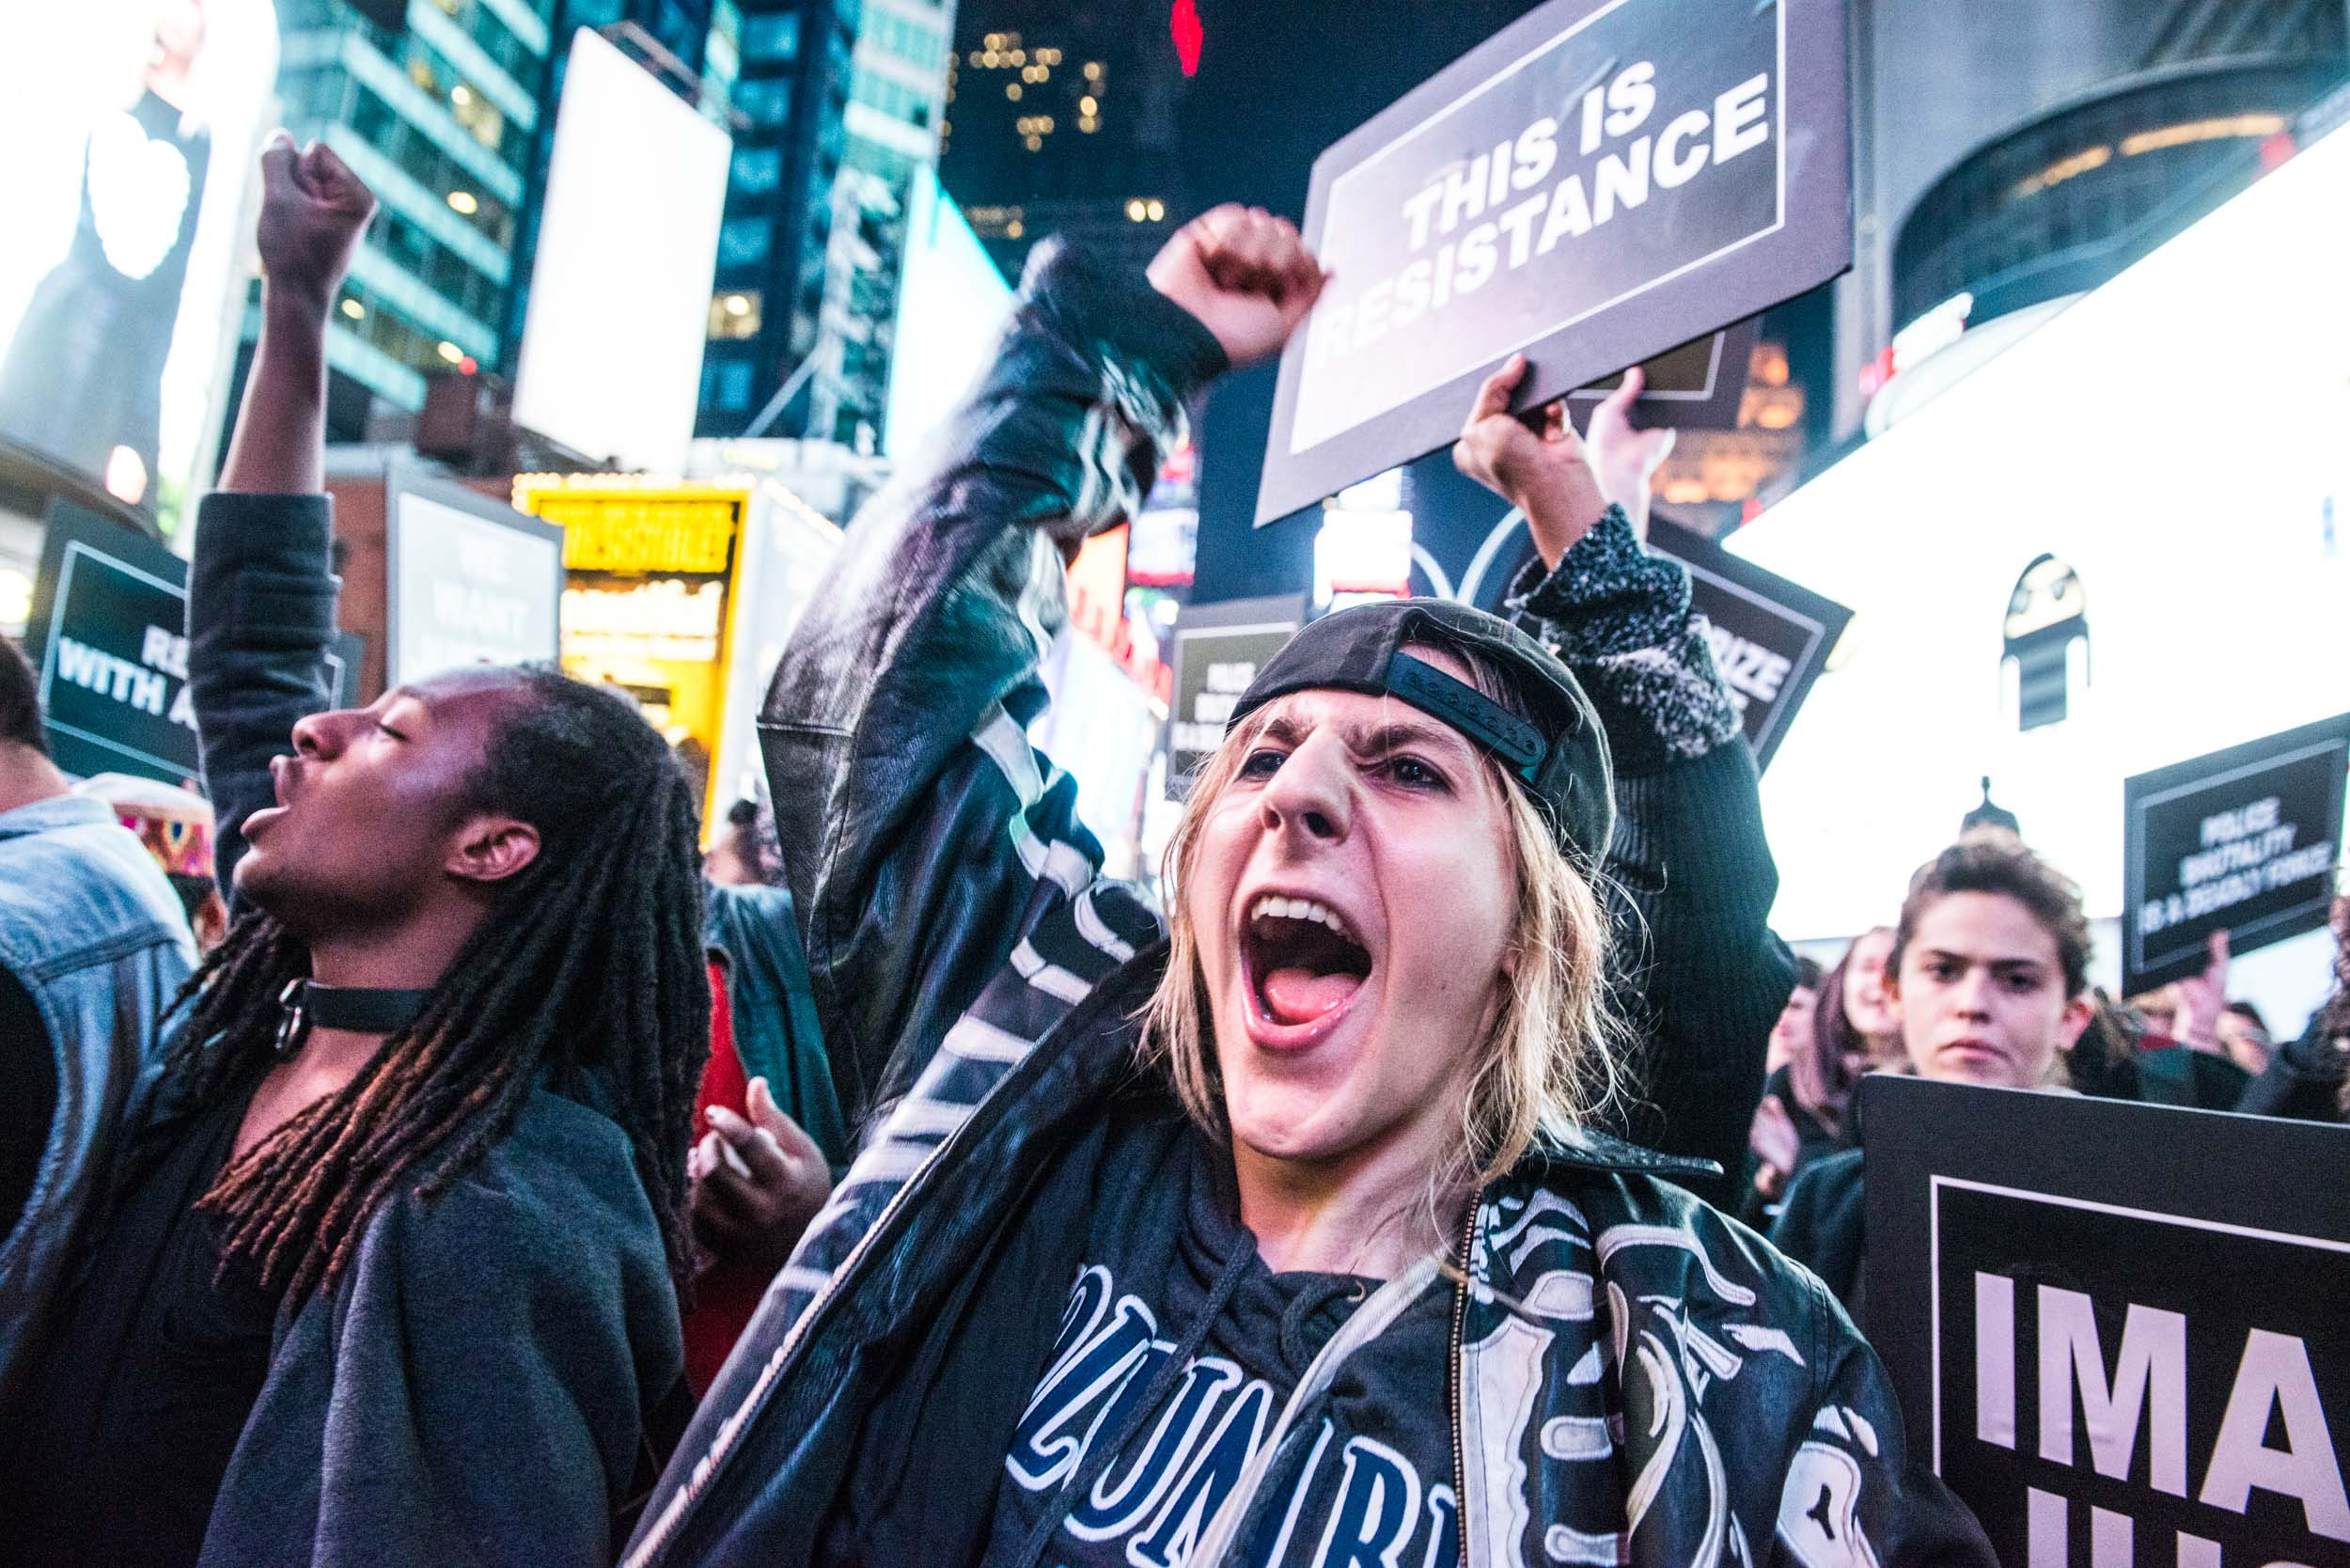 Black lives matter close up white anger - current events - Photo credit Nicola Bailey.jpg